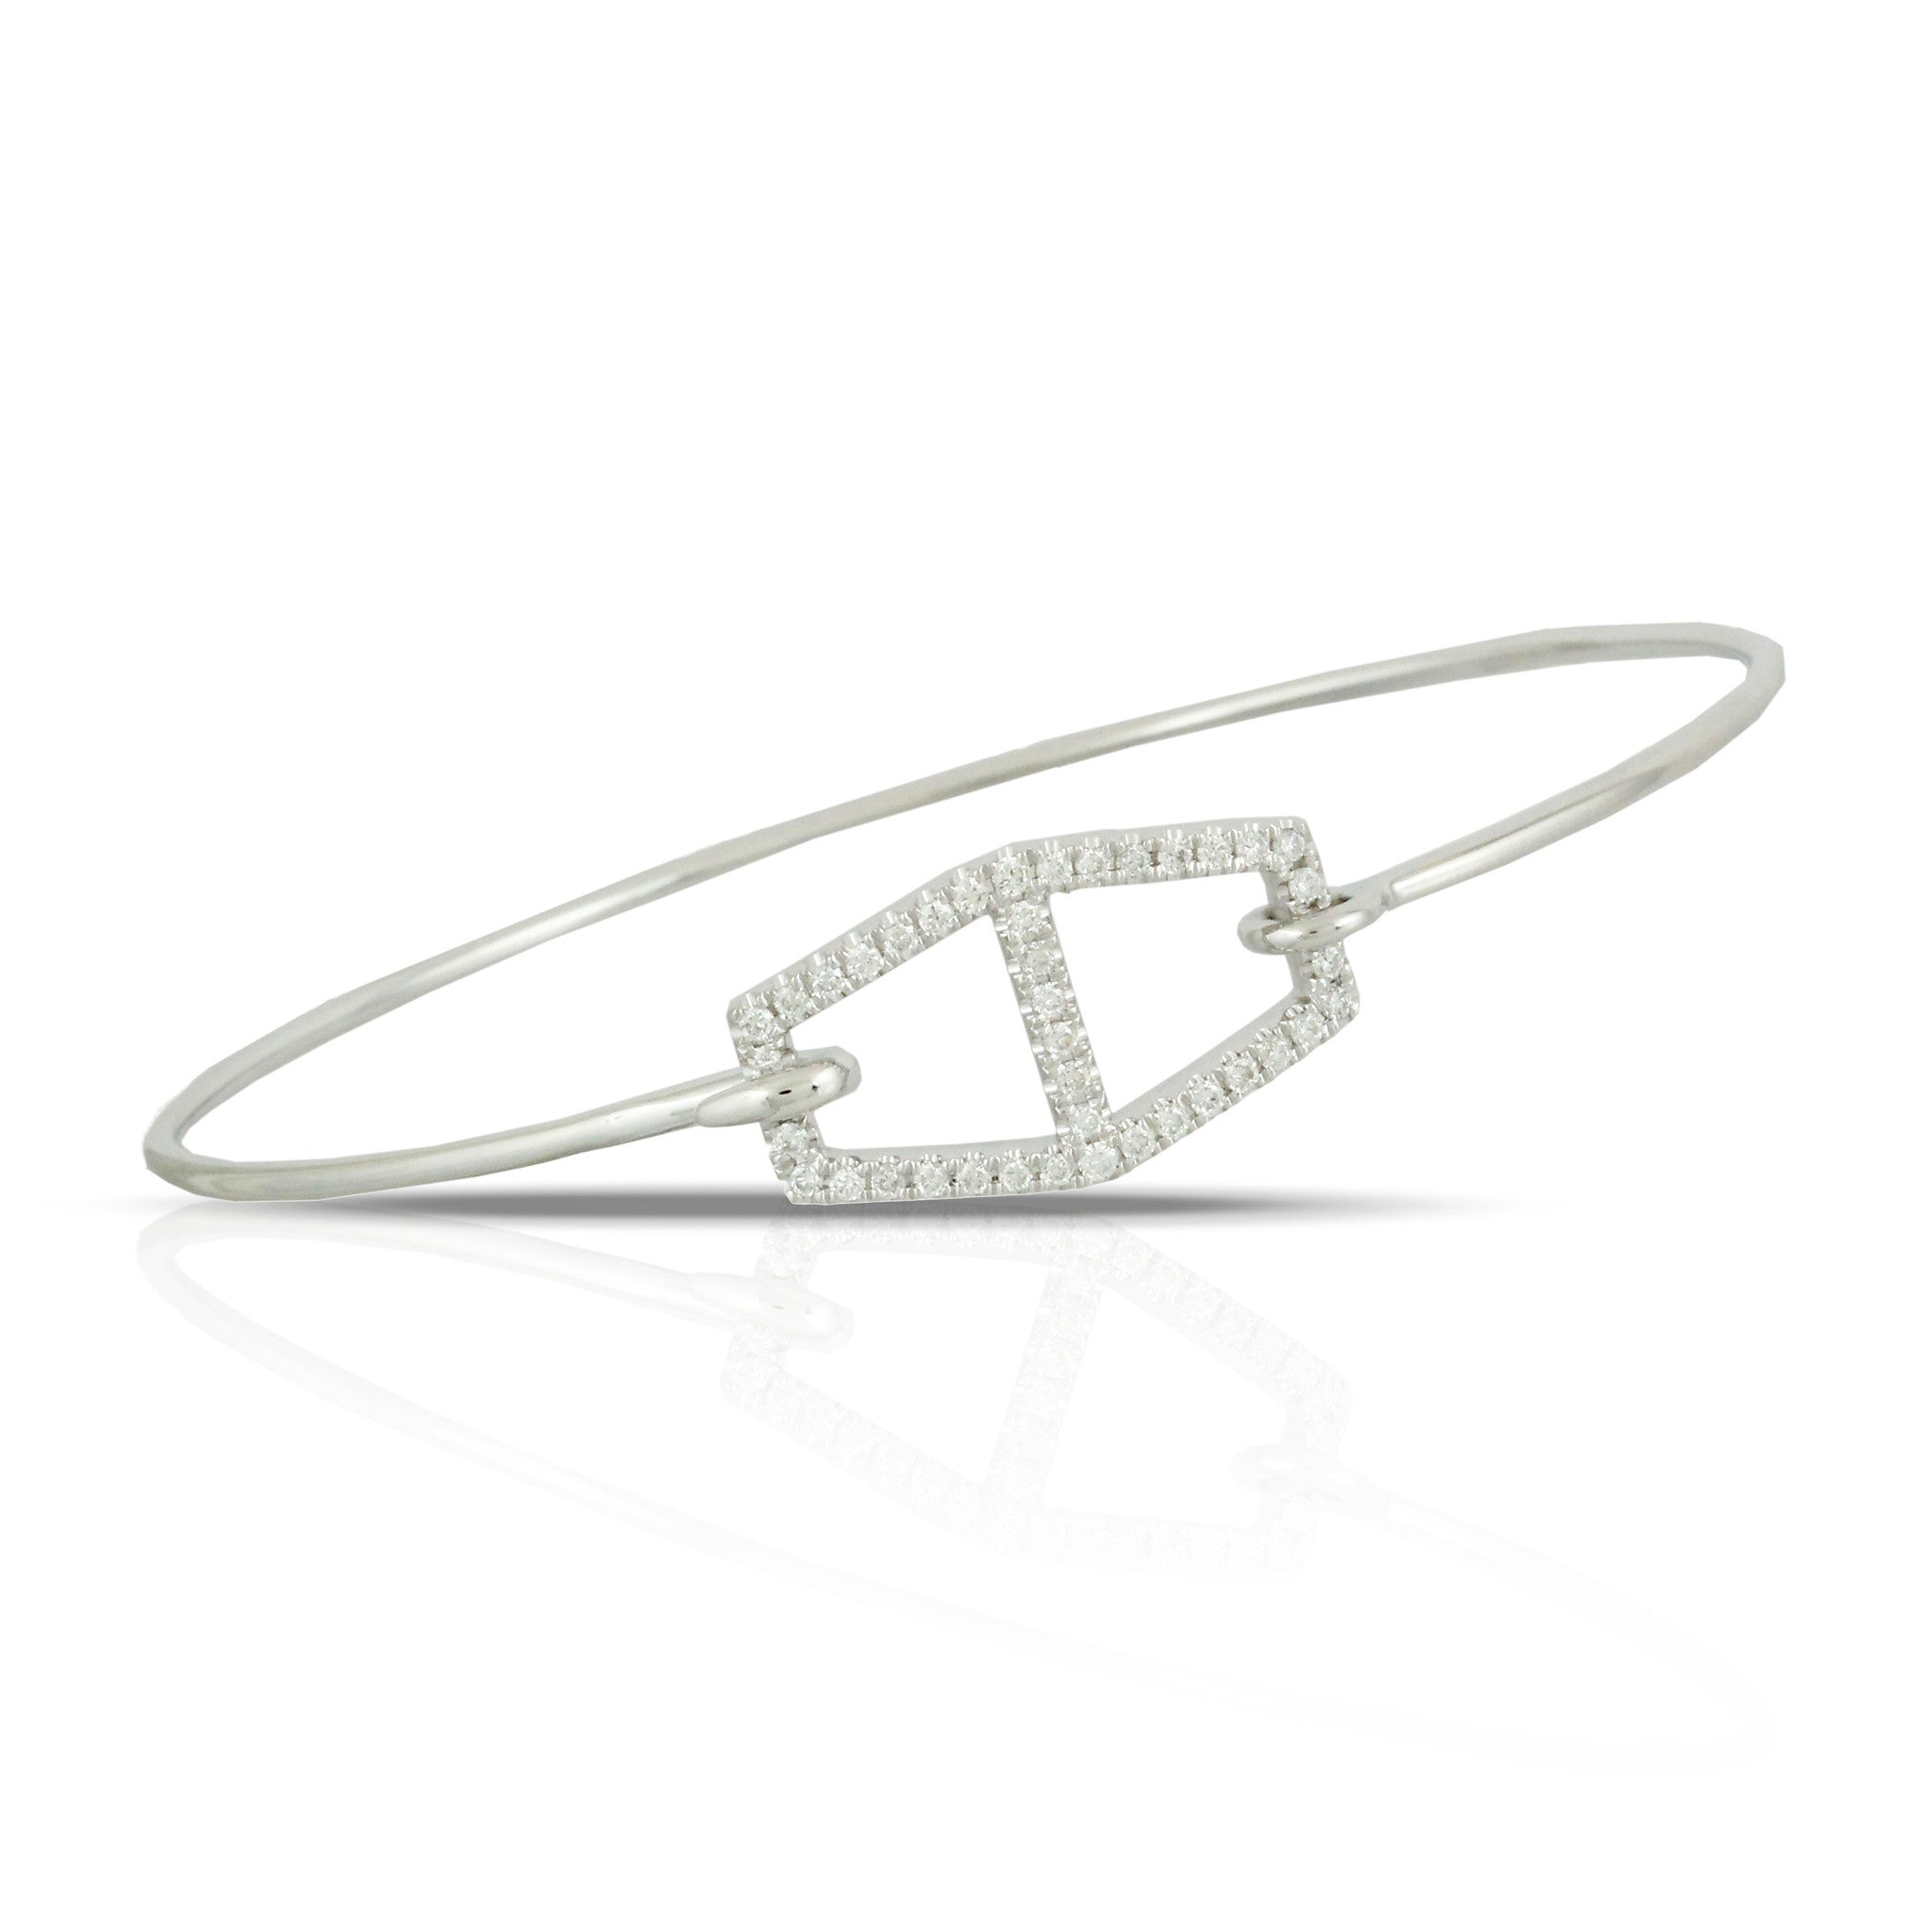 Doves Ladies' 18k White Gold Diamond Pave Bangle by Jewelry Designer Doron Paloma